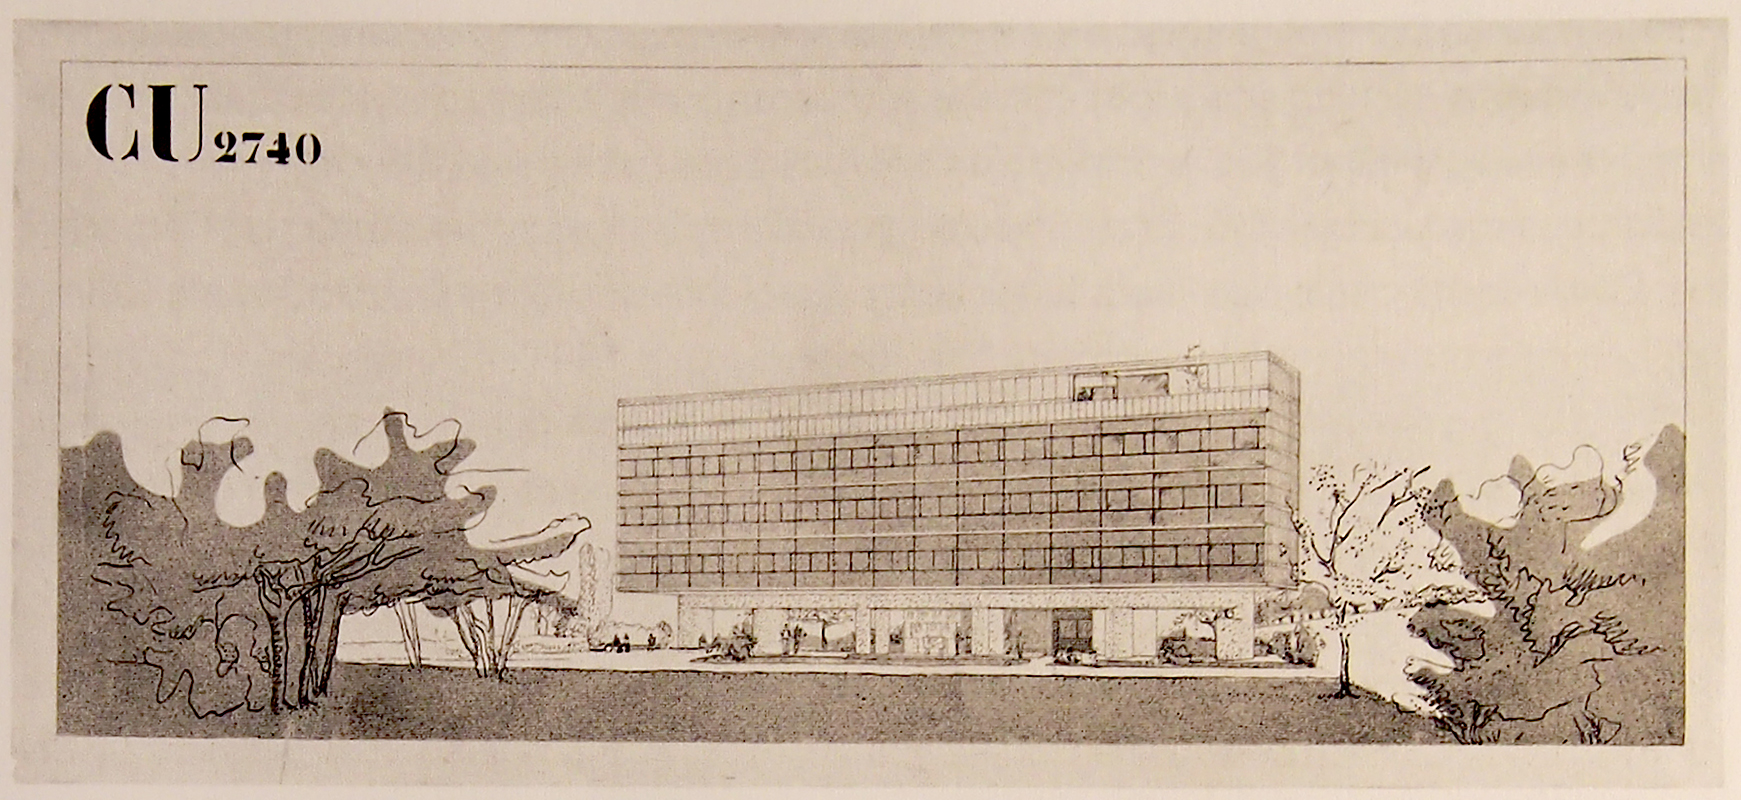 Le Corbusier. Envisioning Architecture (MoMA, New York, 2002) 1932, 21